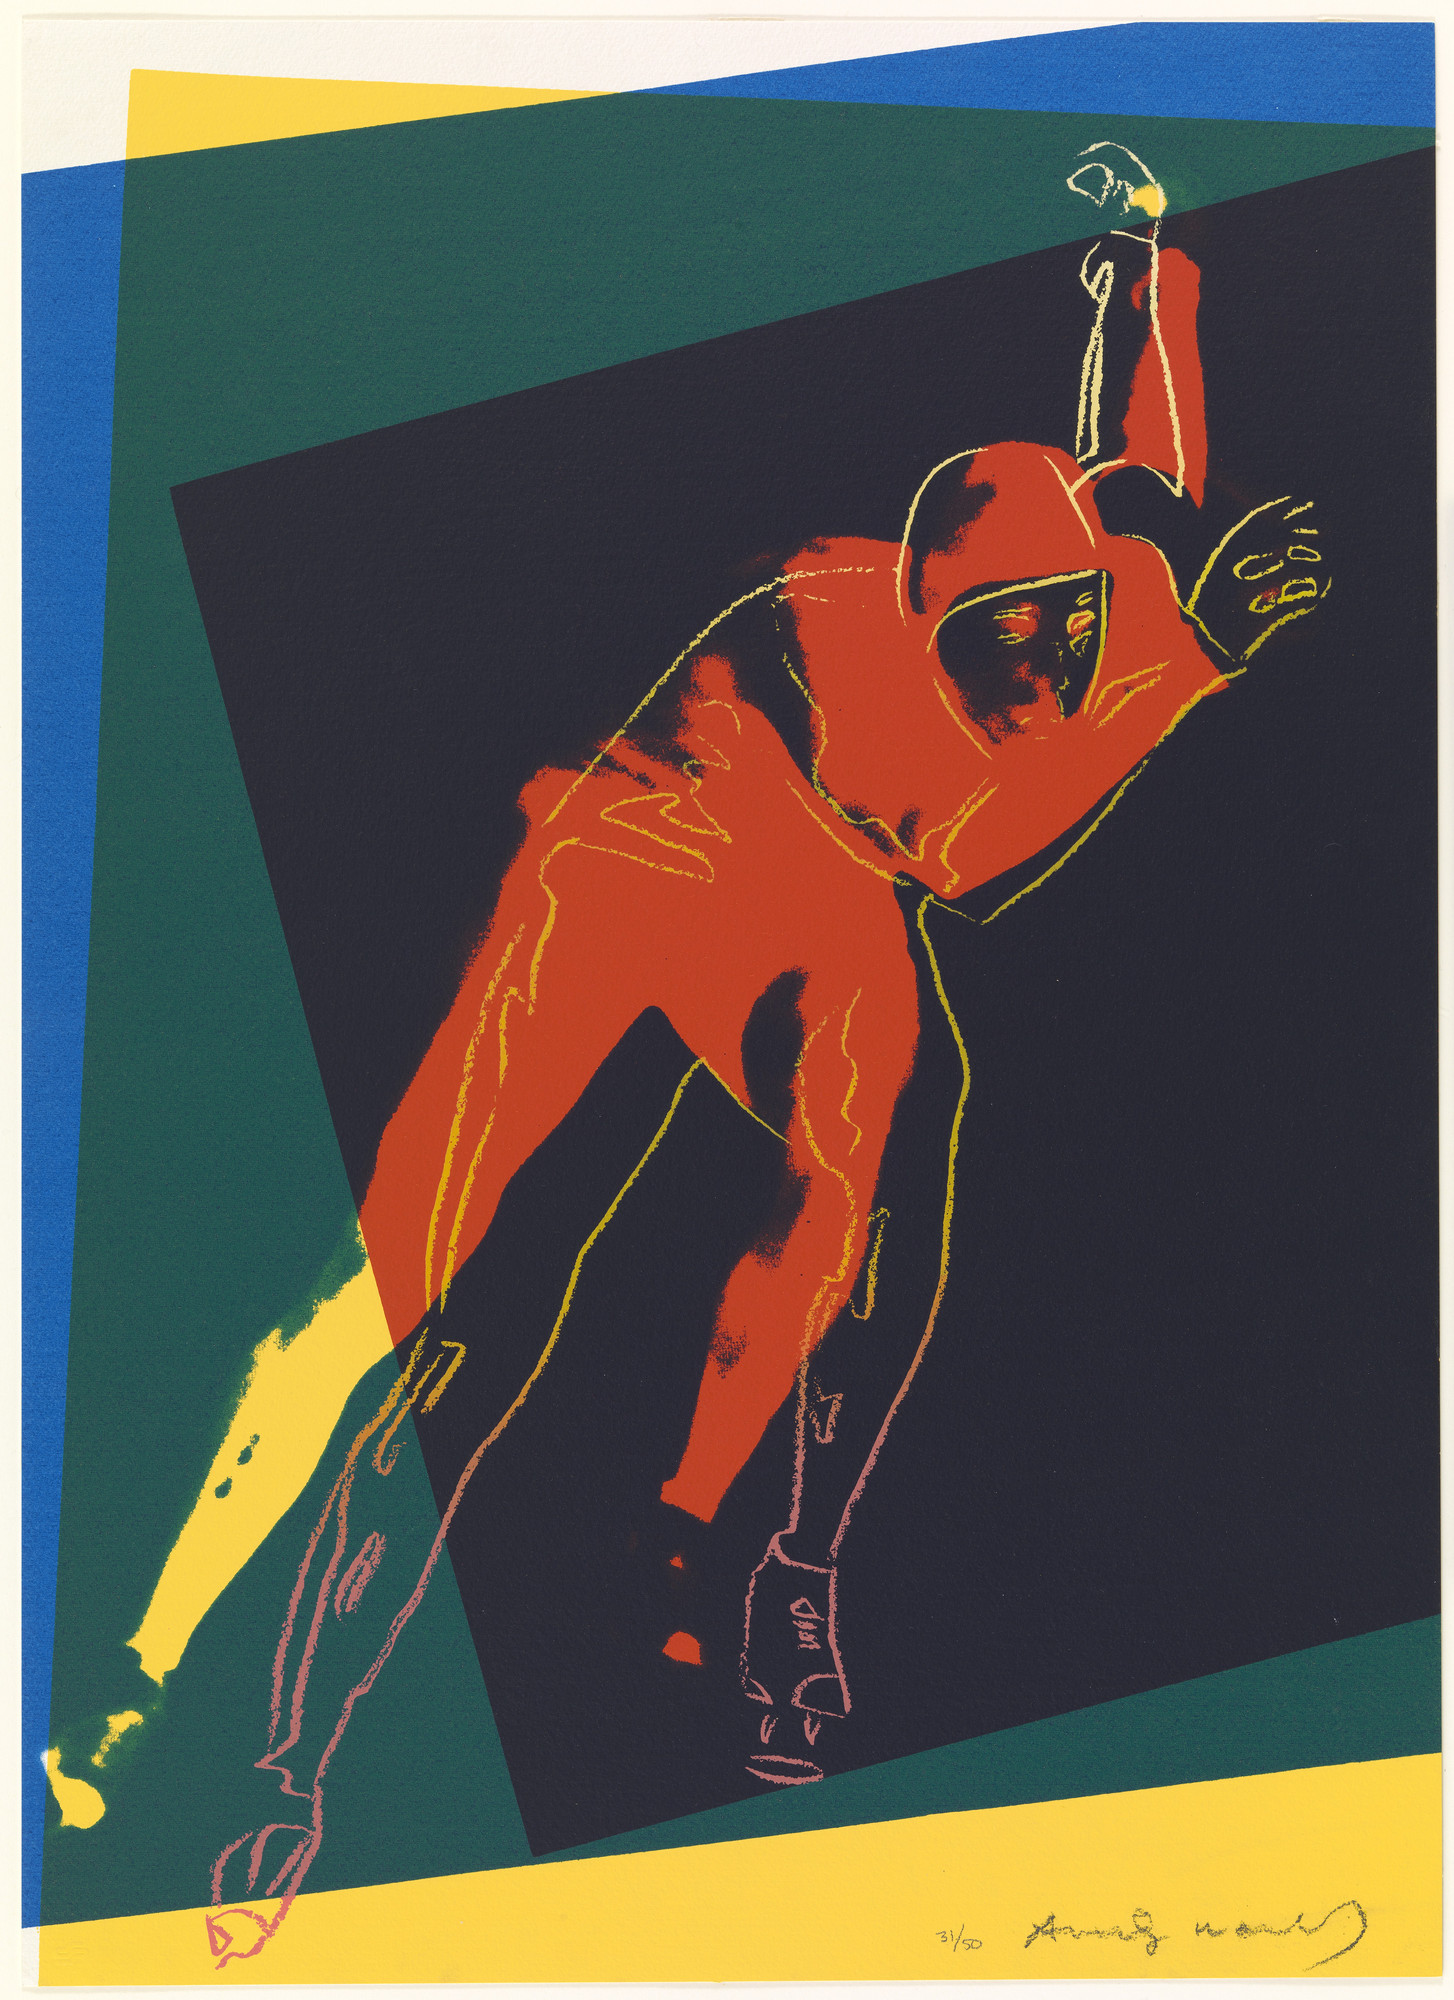 Andy Warhol. Speed Skater. 1983